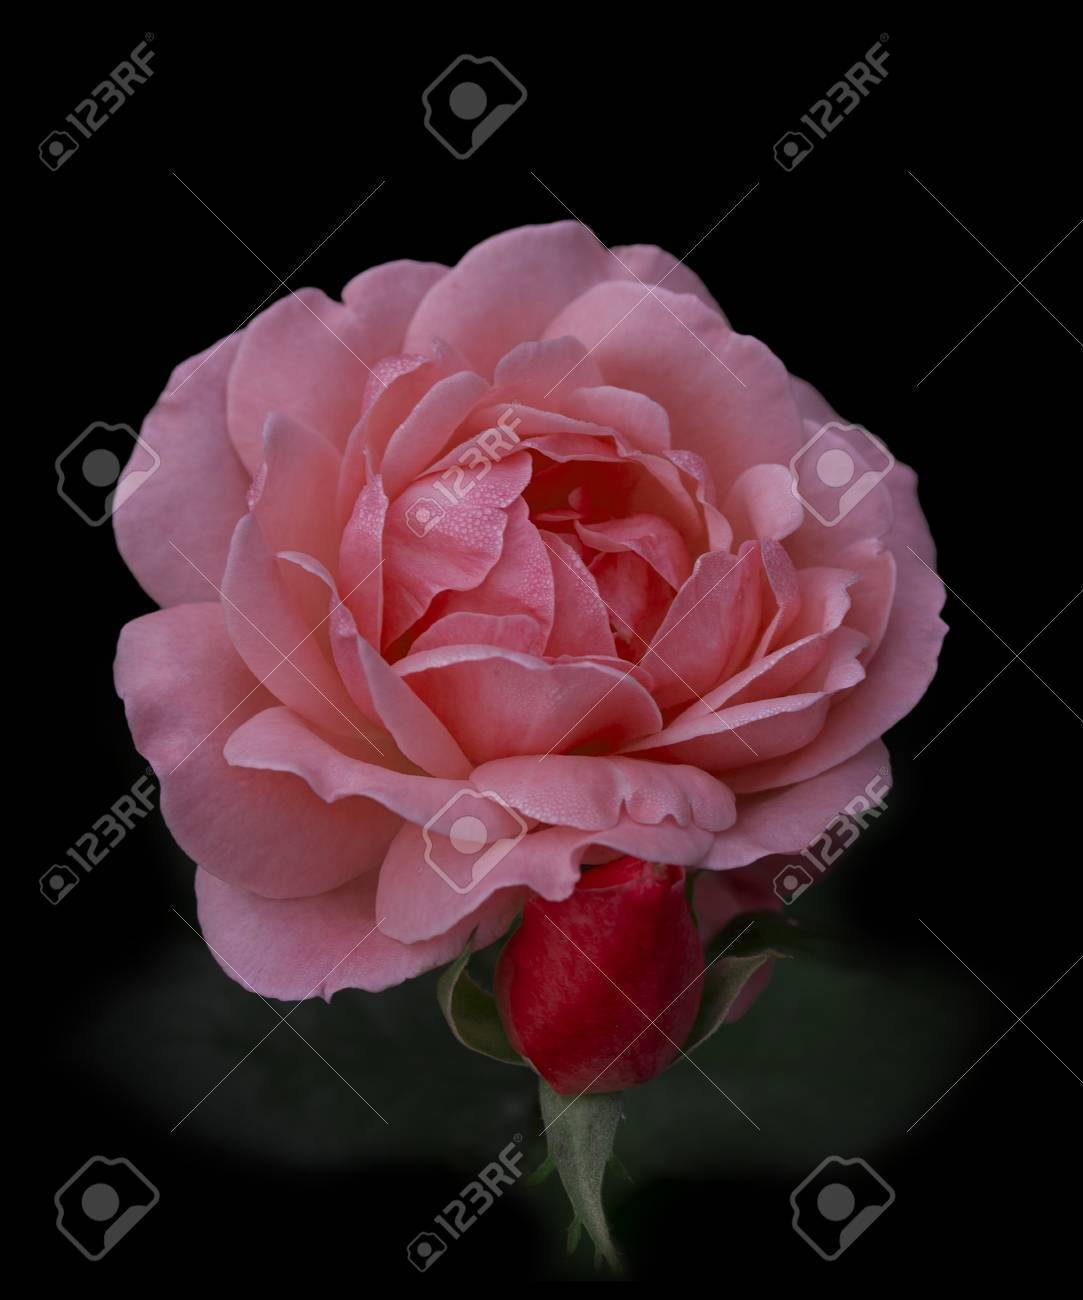 Beautiful Flower Of A Rose Bud Stock Photo Picture And Royalty Free